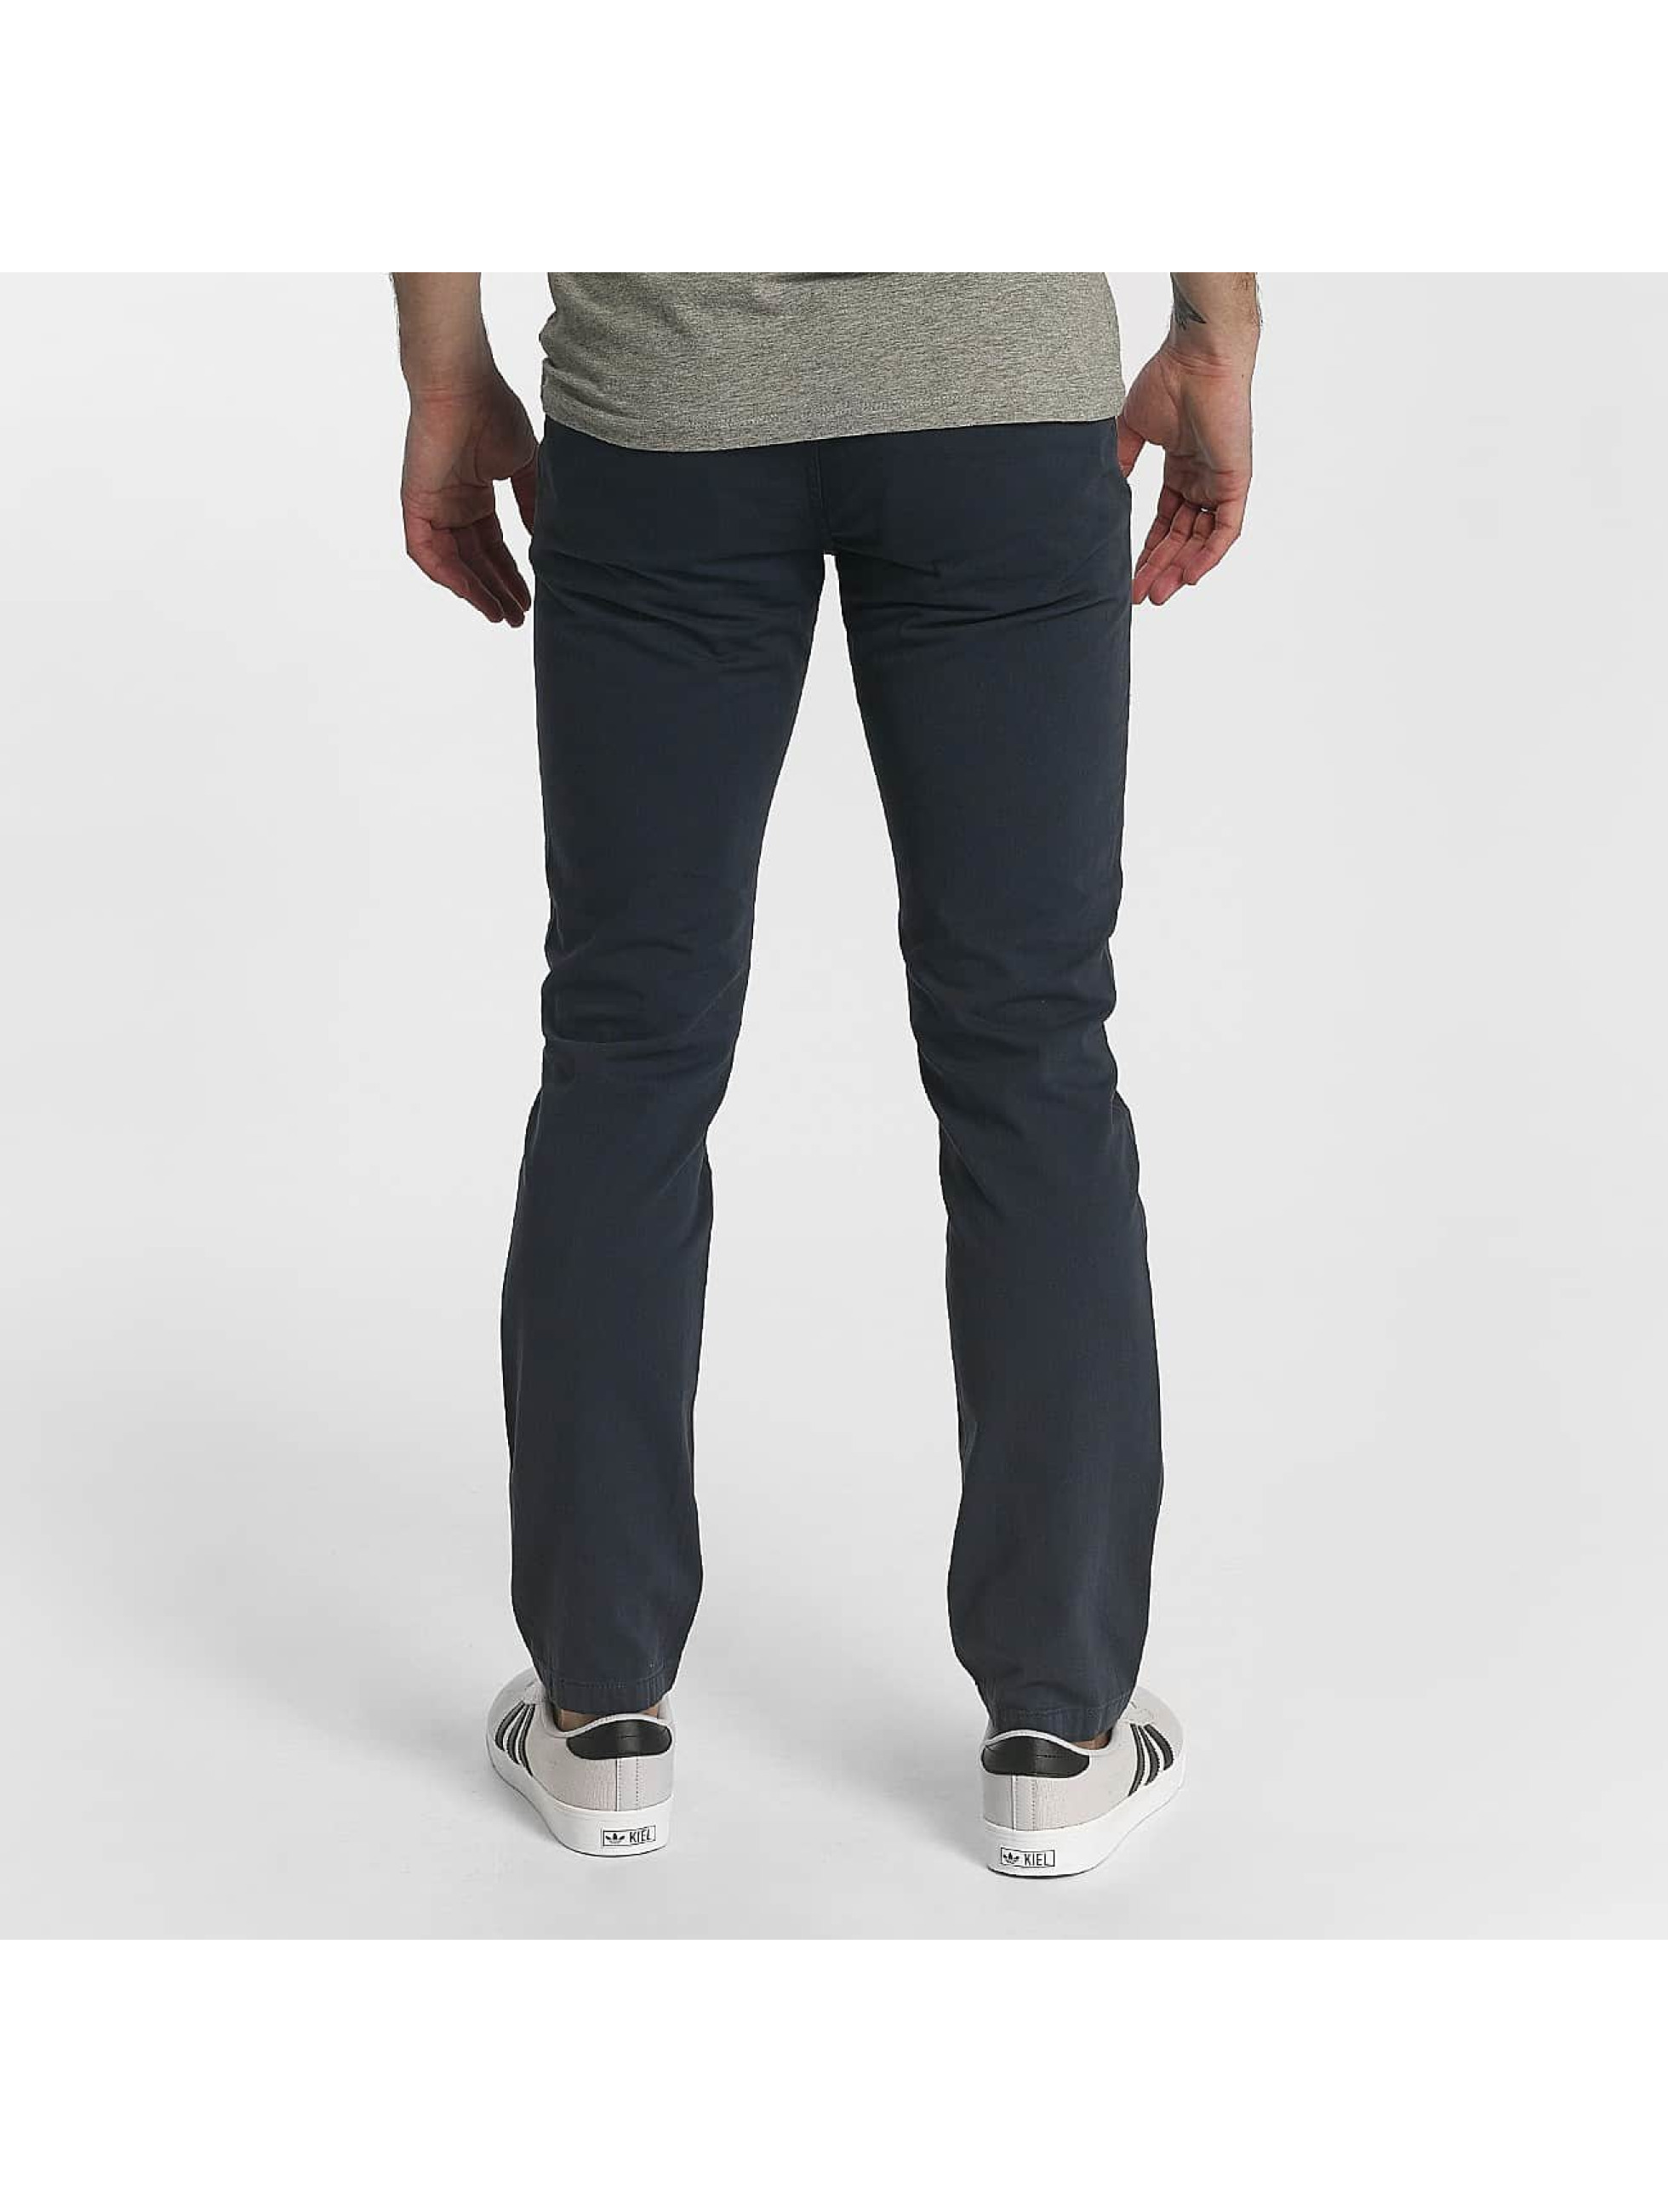 SHINE Original Chino Abdul blau